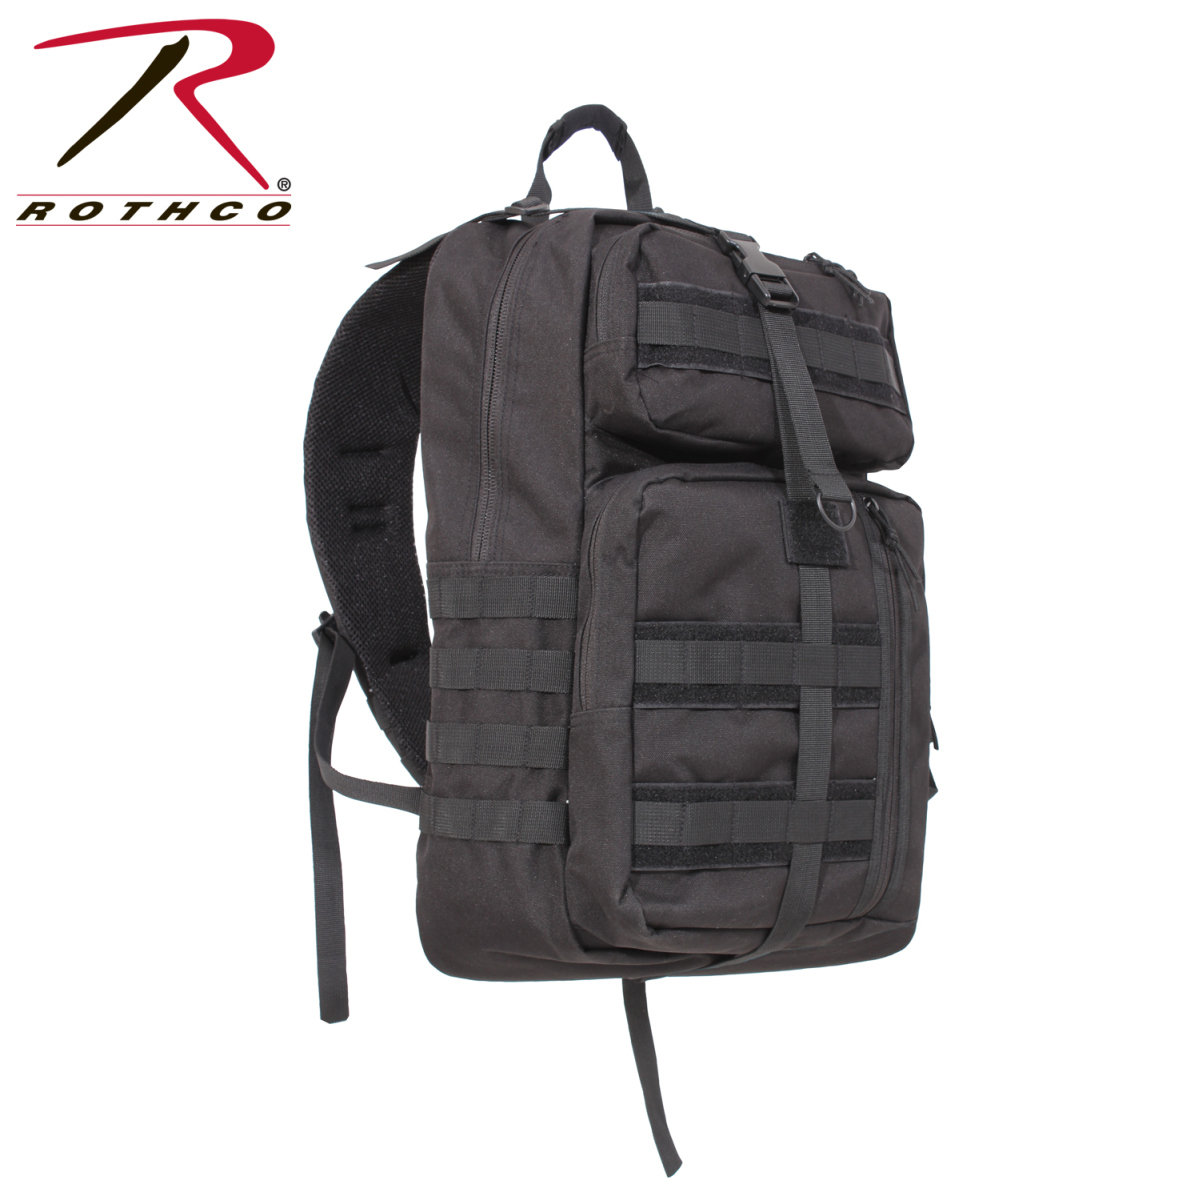 Concealed Carry Packs